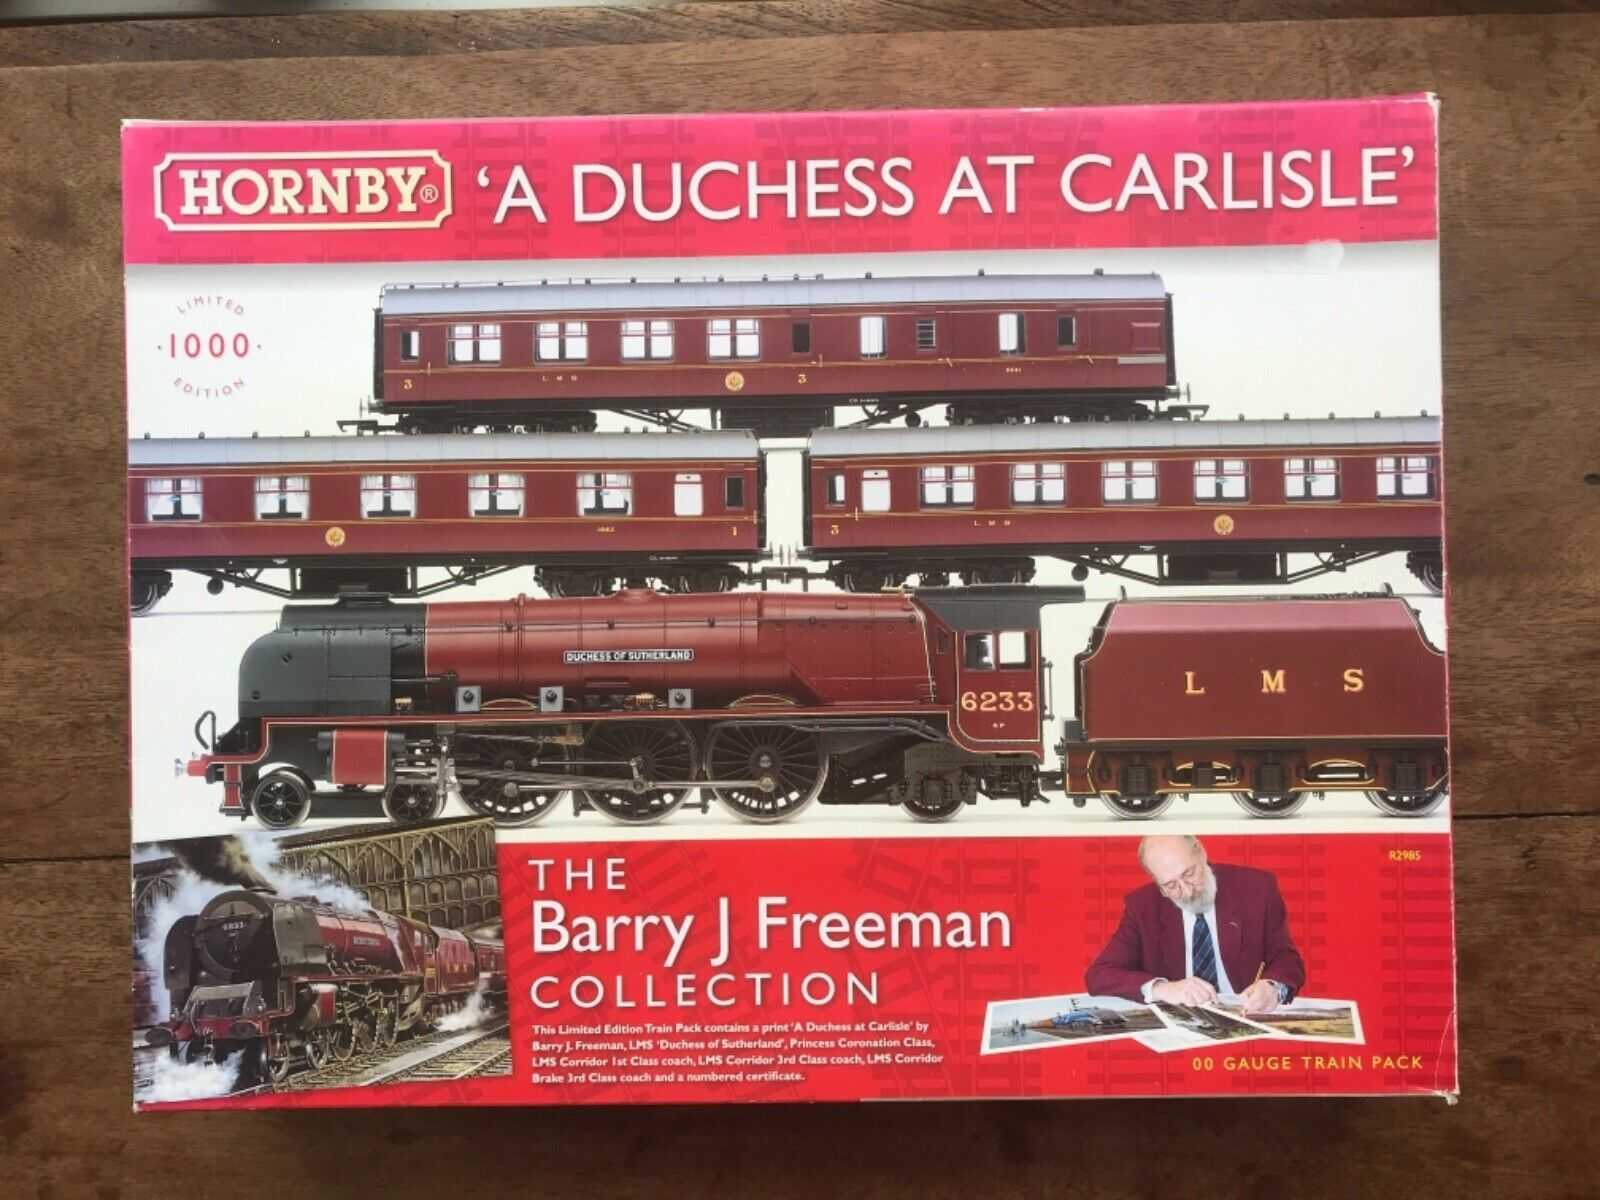 HORNBY 'A DUCHESS AT CARLISLE' R2985THE BARRY FREEMAN COLLECTION DCC READY